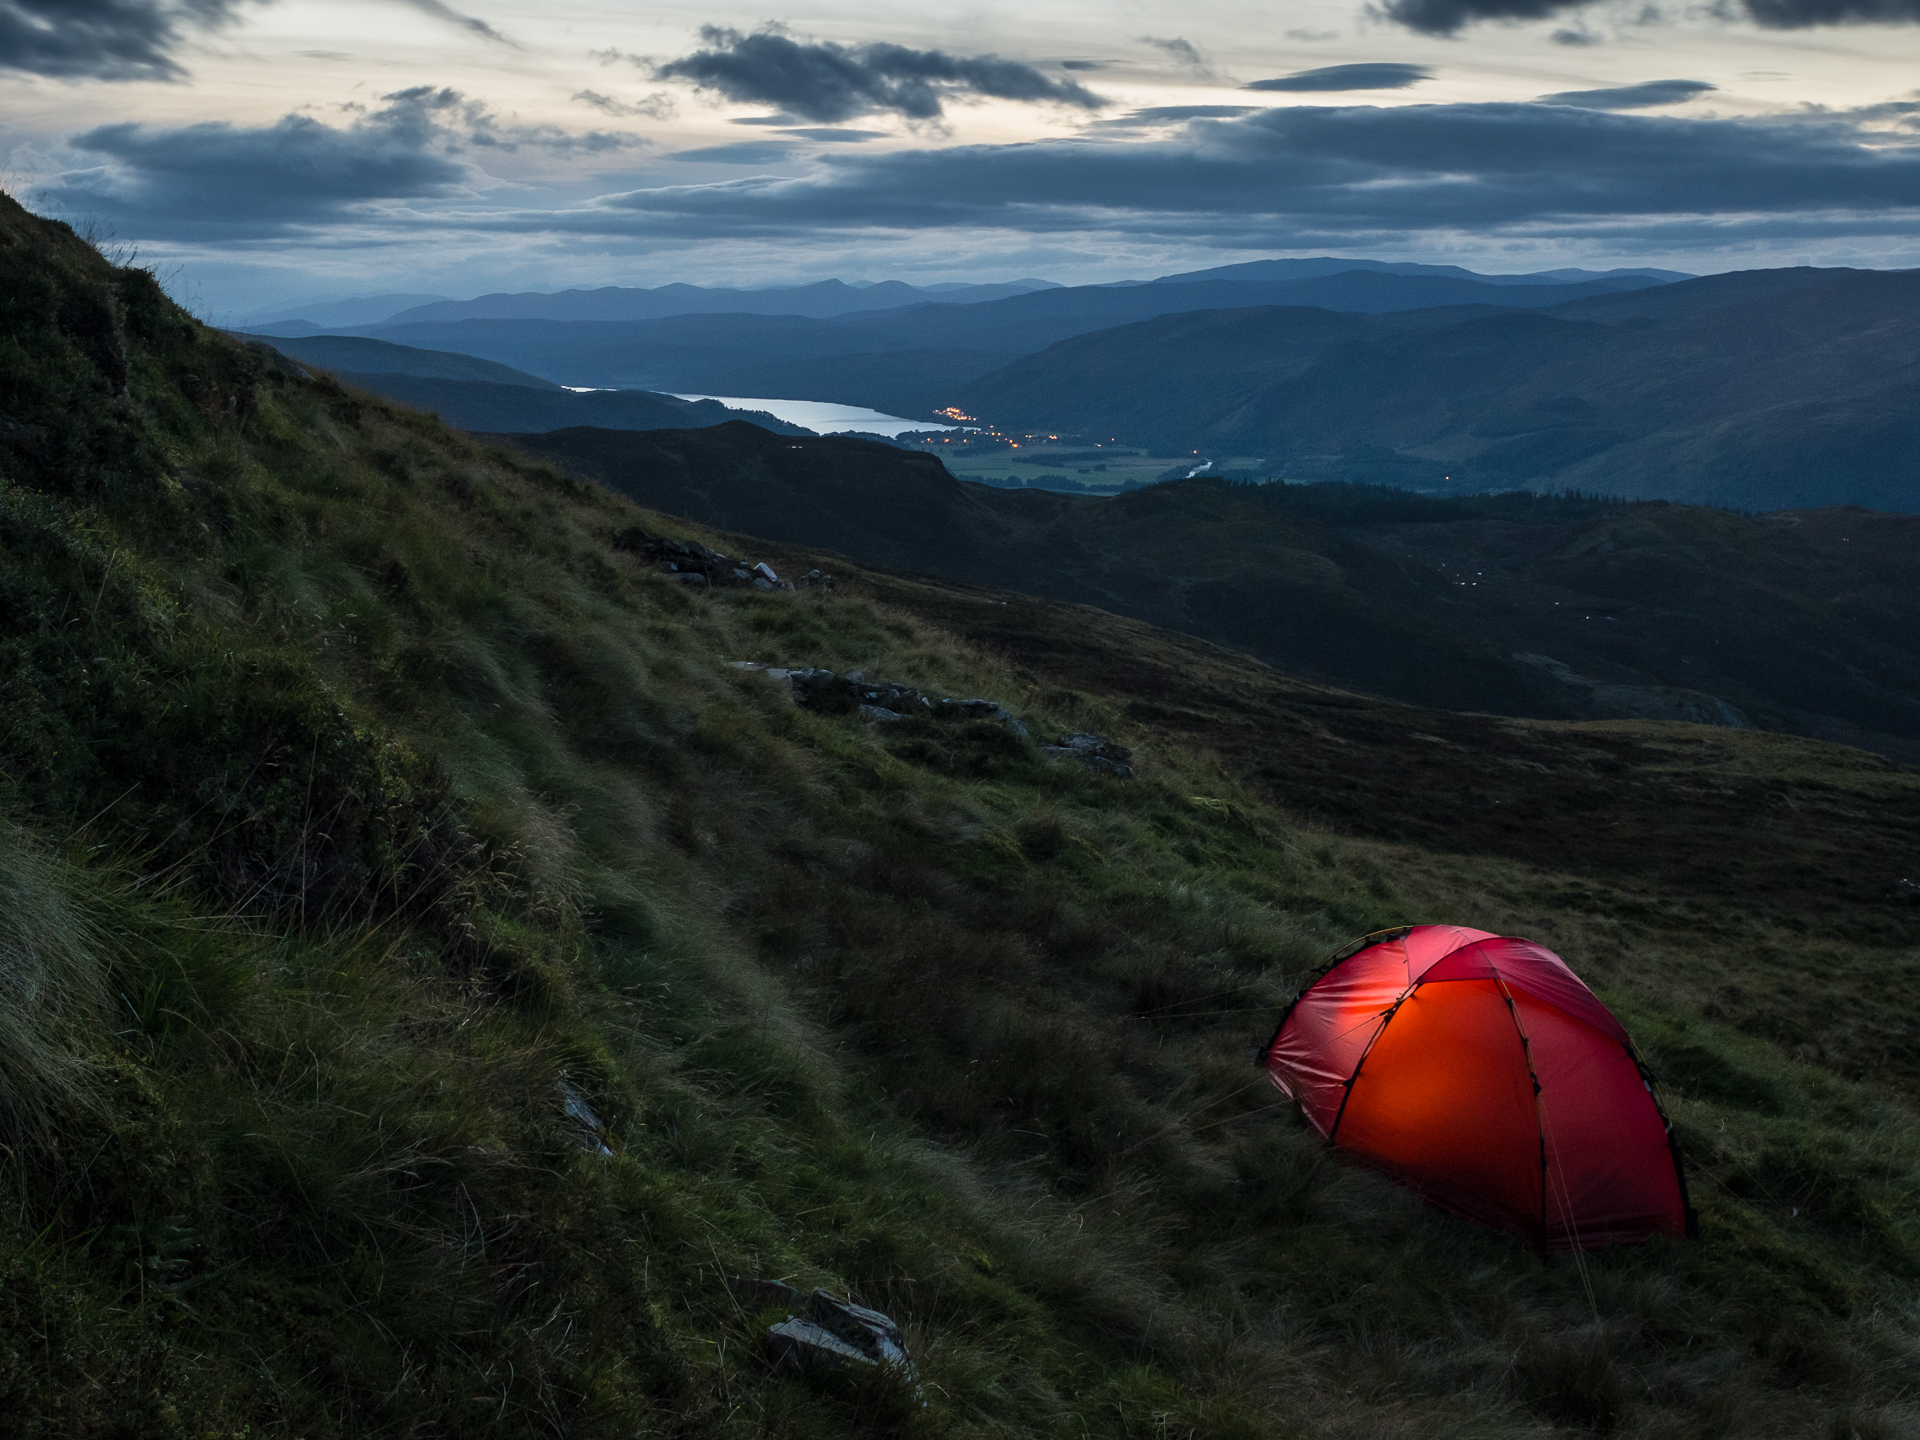 North Observatory Camp. Site of Maskelyne's Observatory on Schiehallion (1774) for The Well at the World's End. 2016 © Alexander and Susan Maris